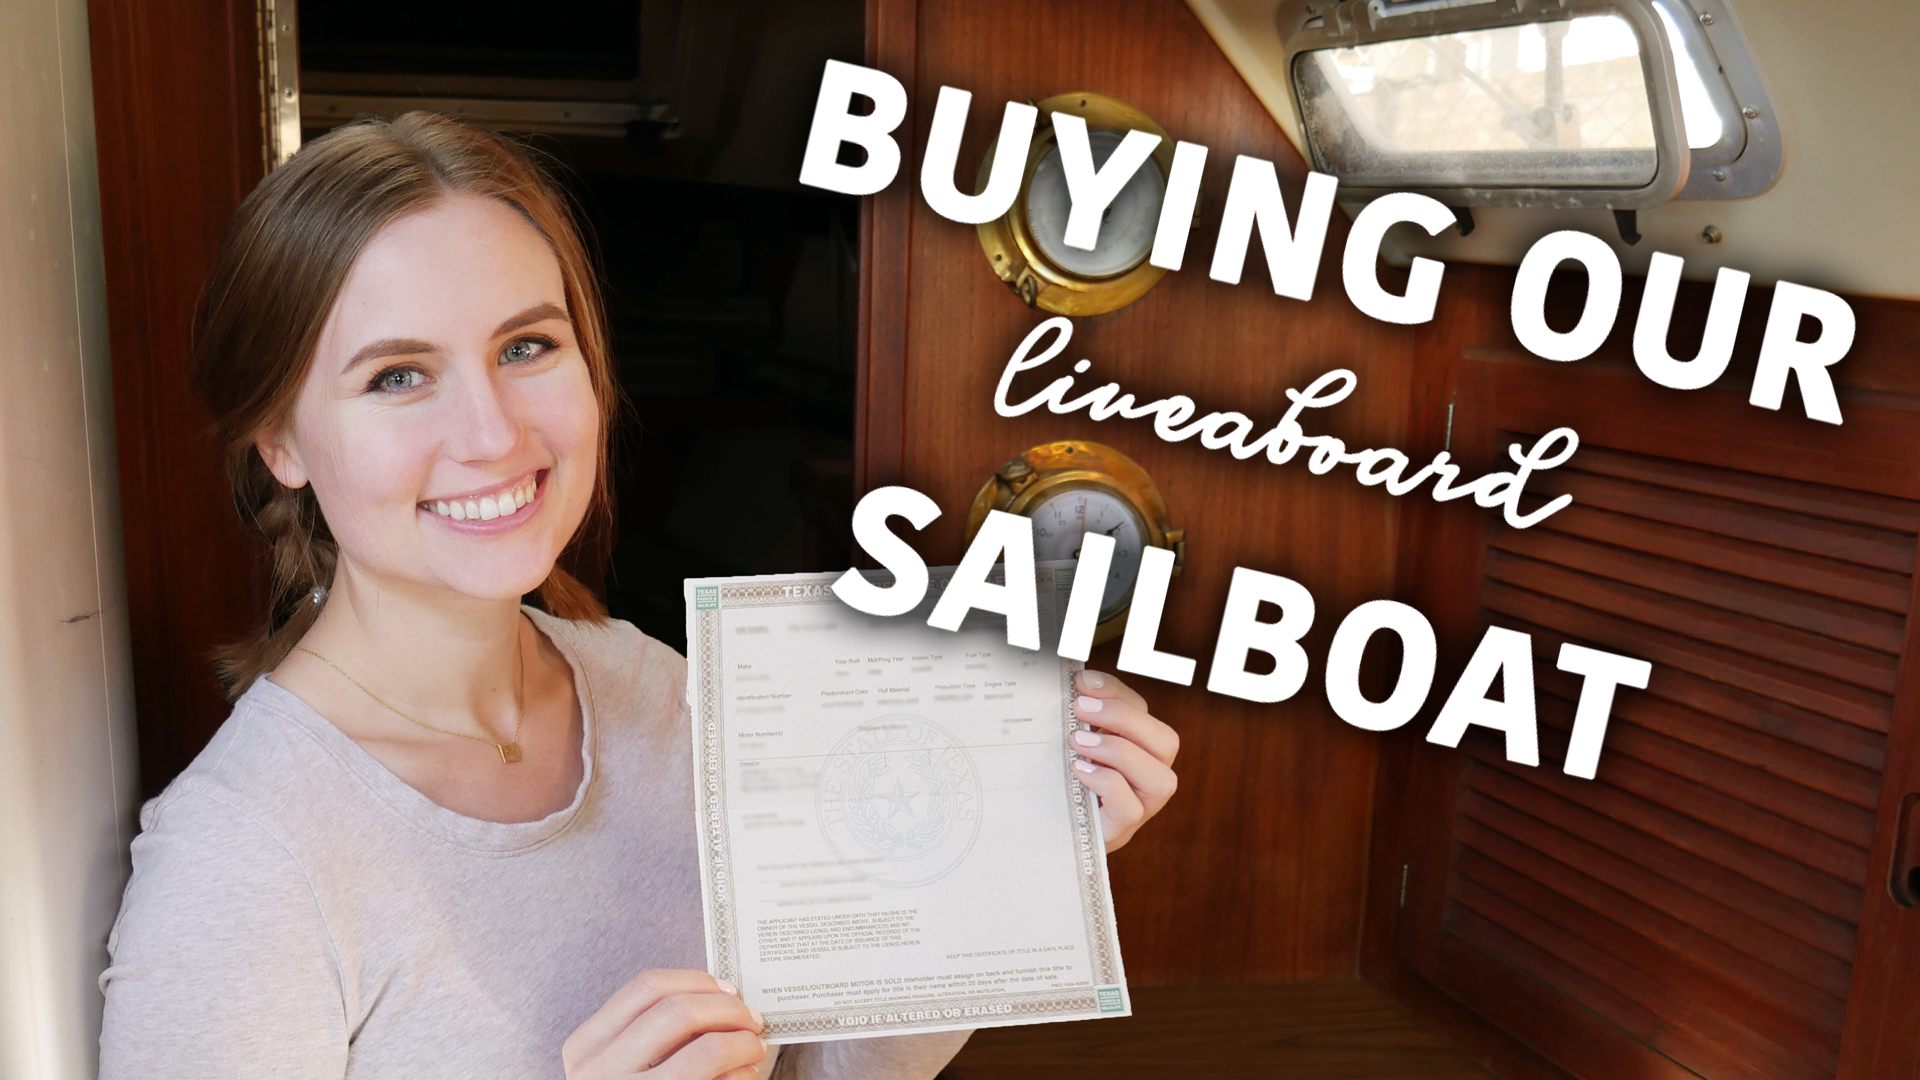 Buying Our Liveaboard Sailboat-ShaggySeas